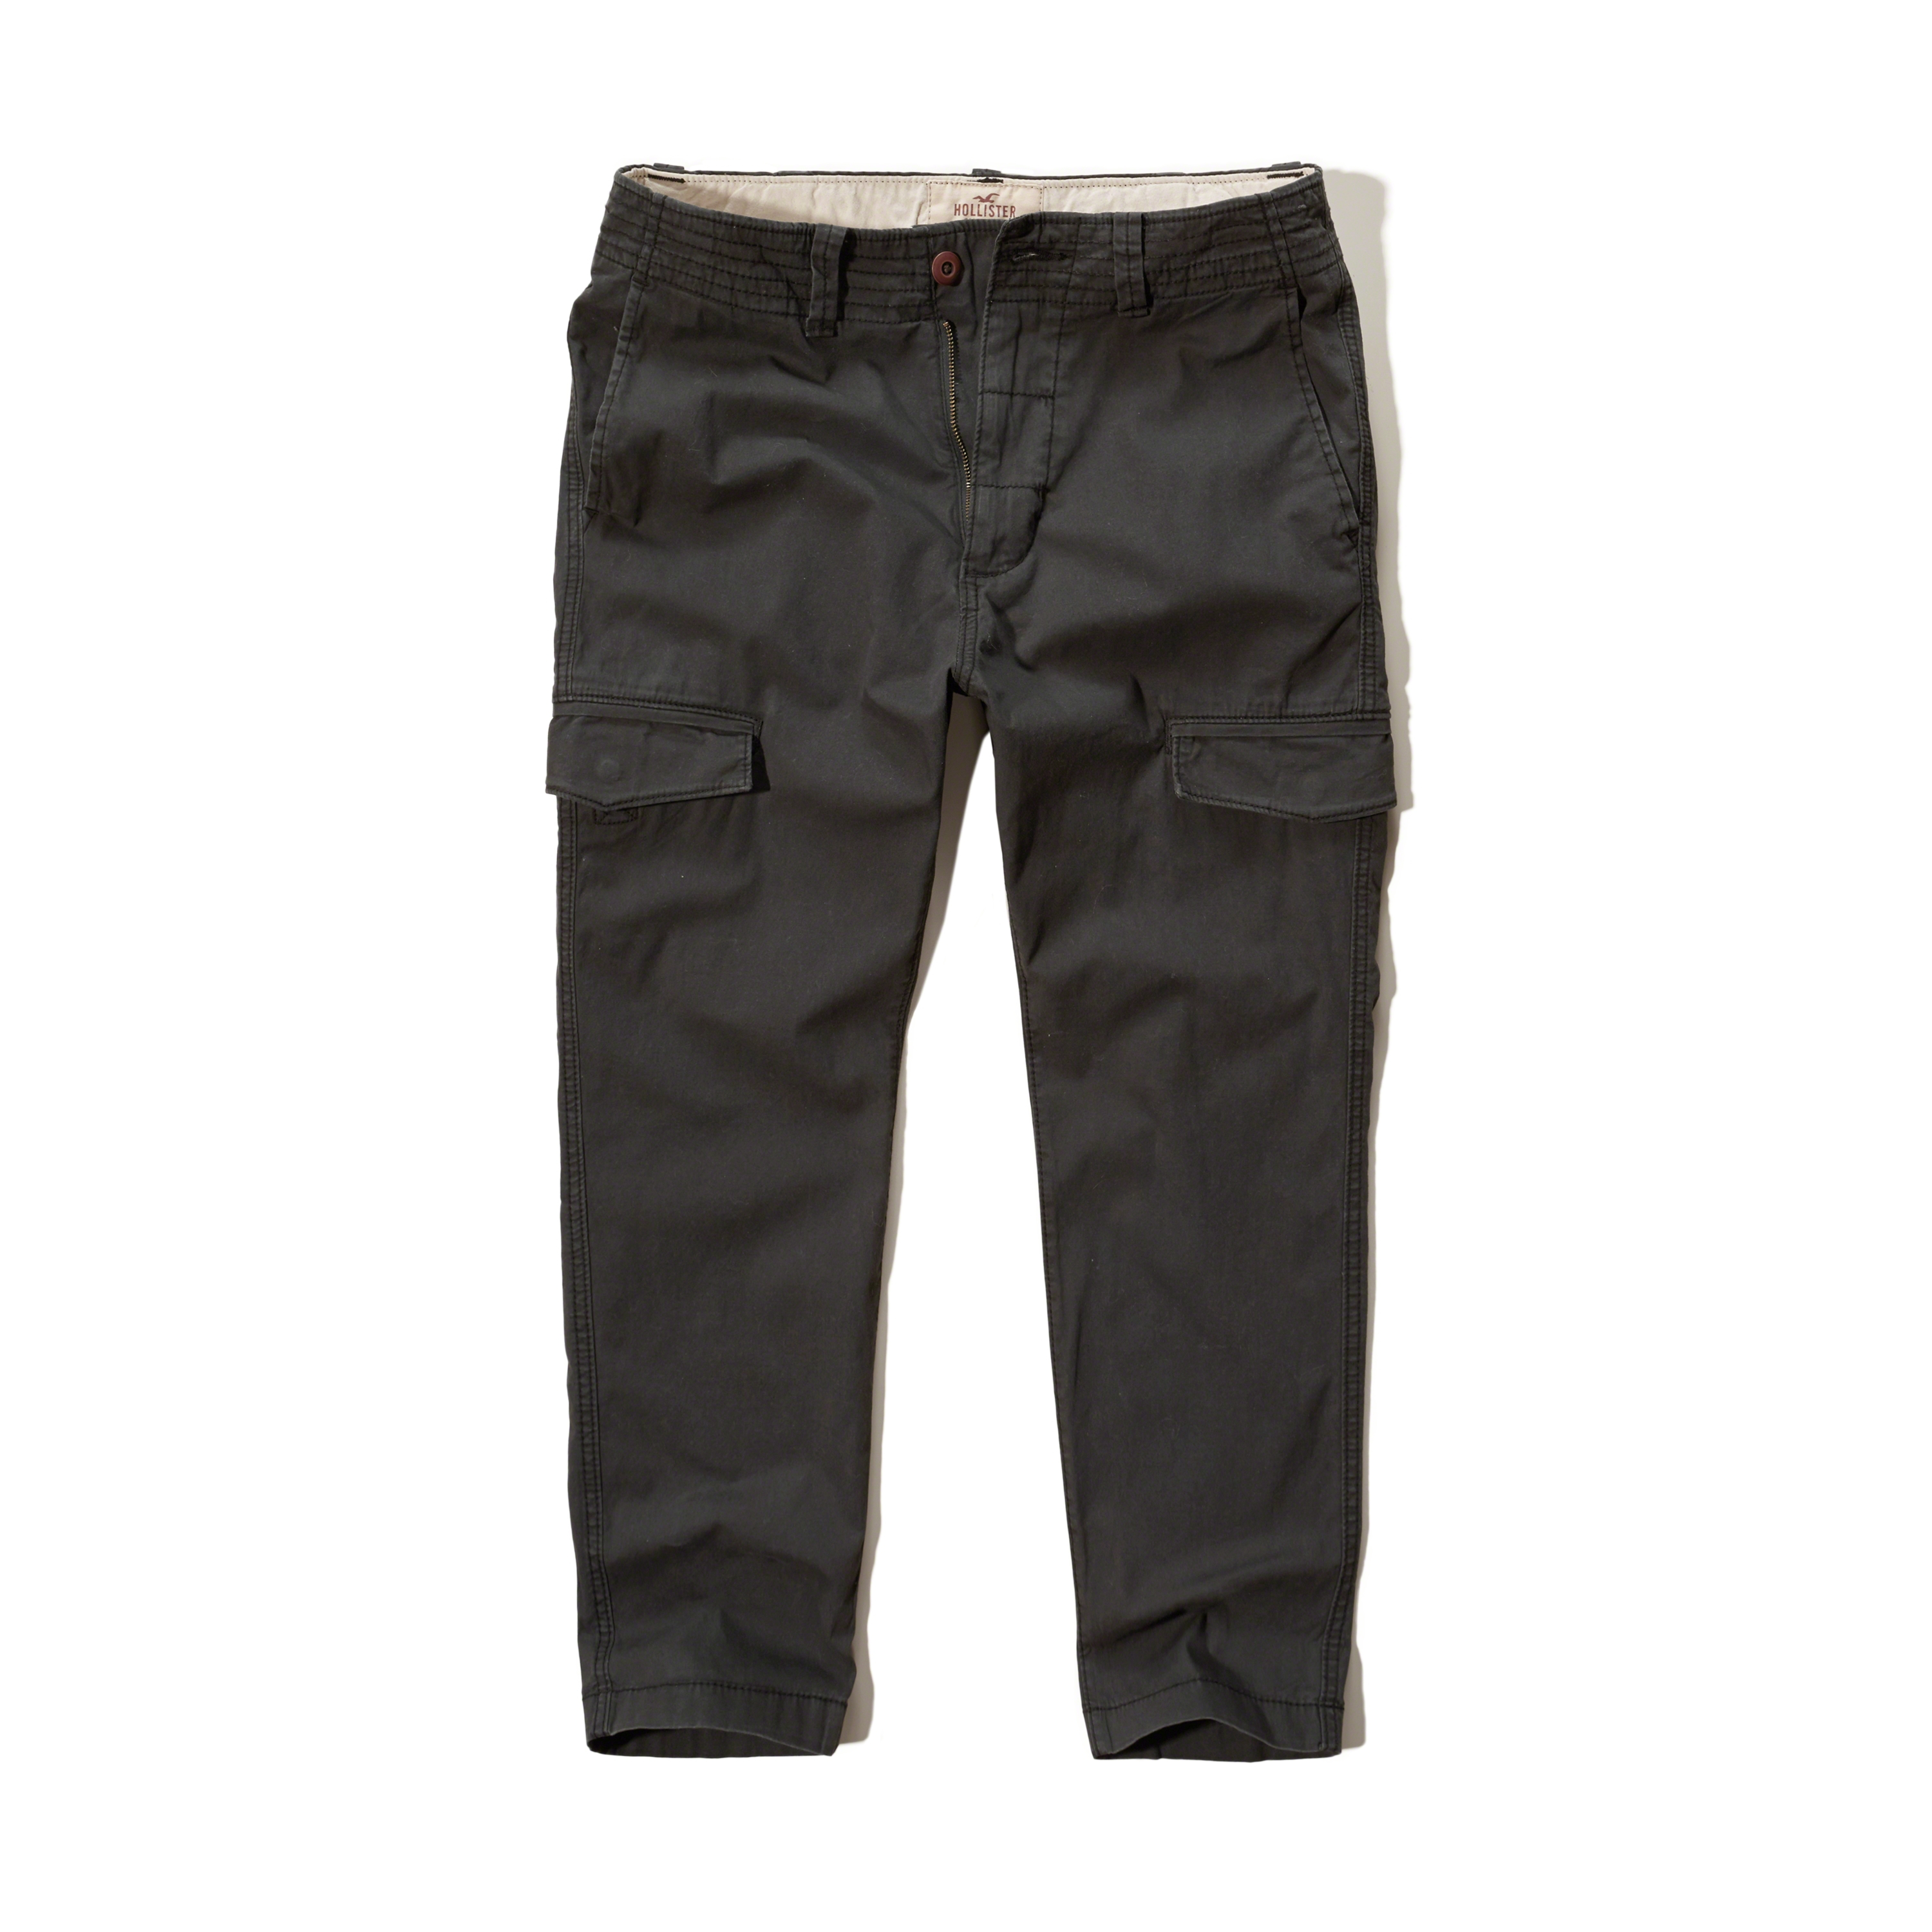 Lyst - Hollister Ankle Cargo Pants in Gray for Men